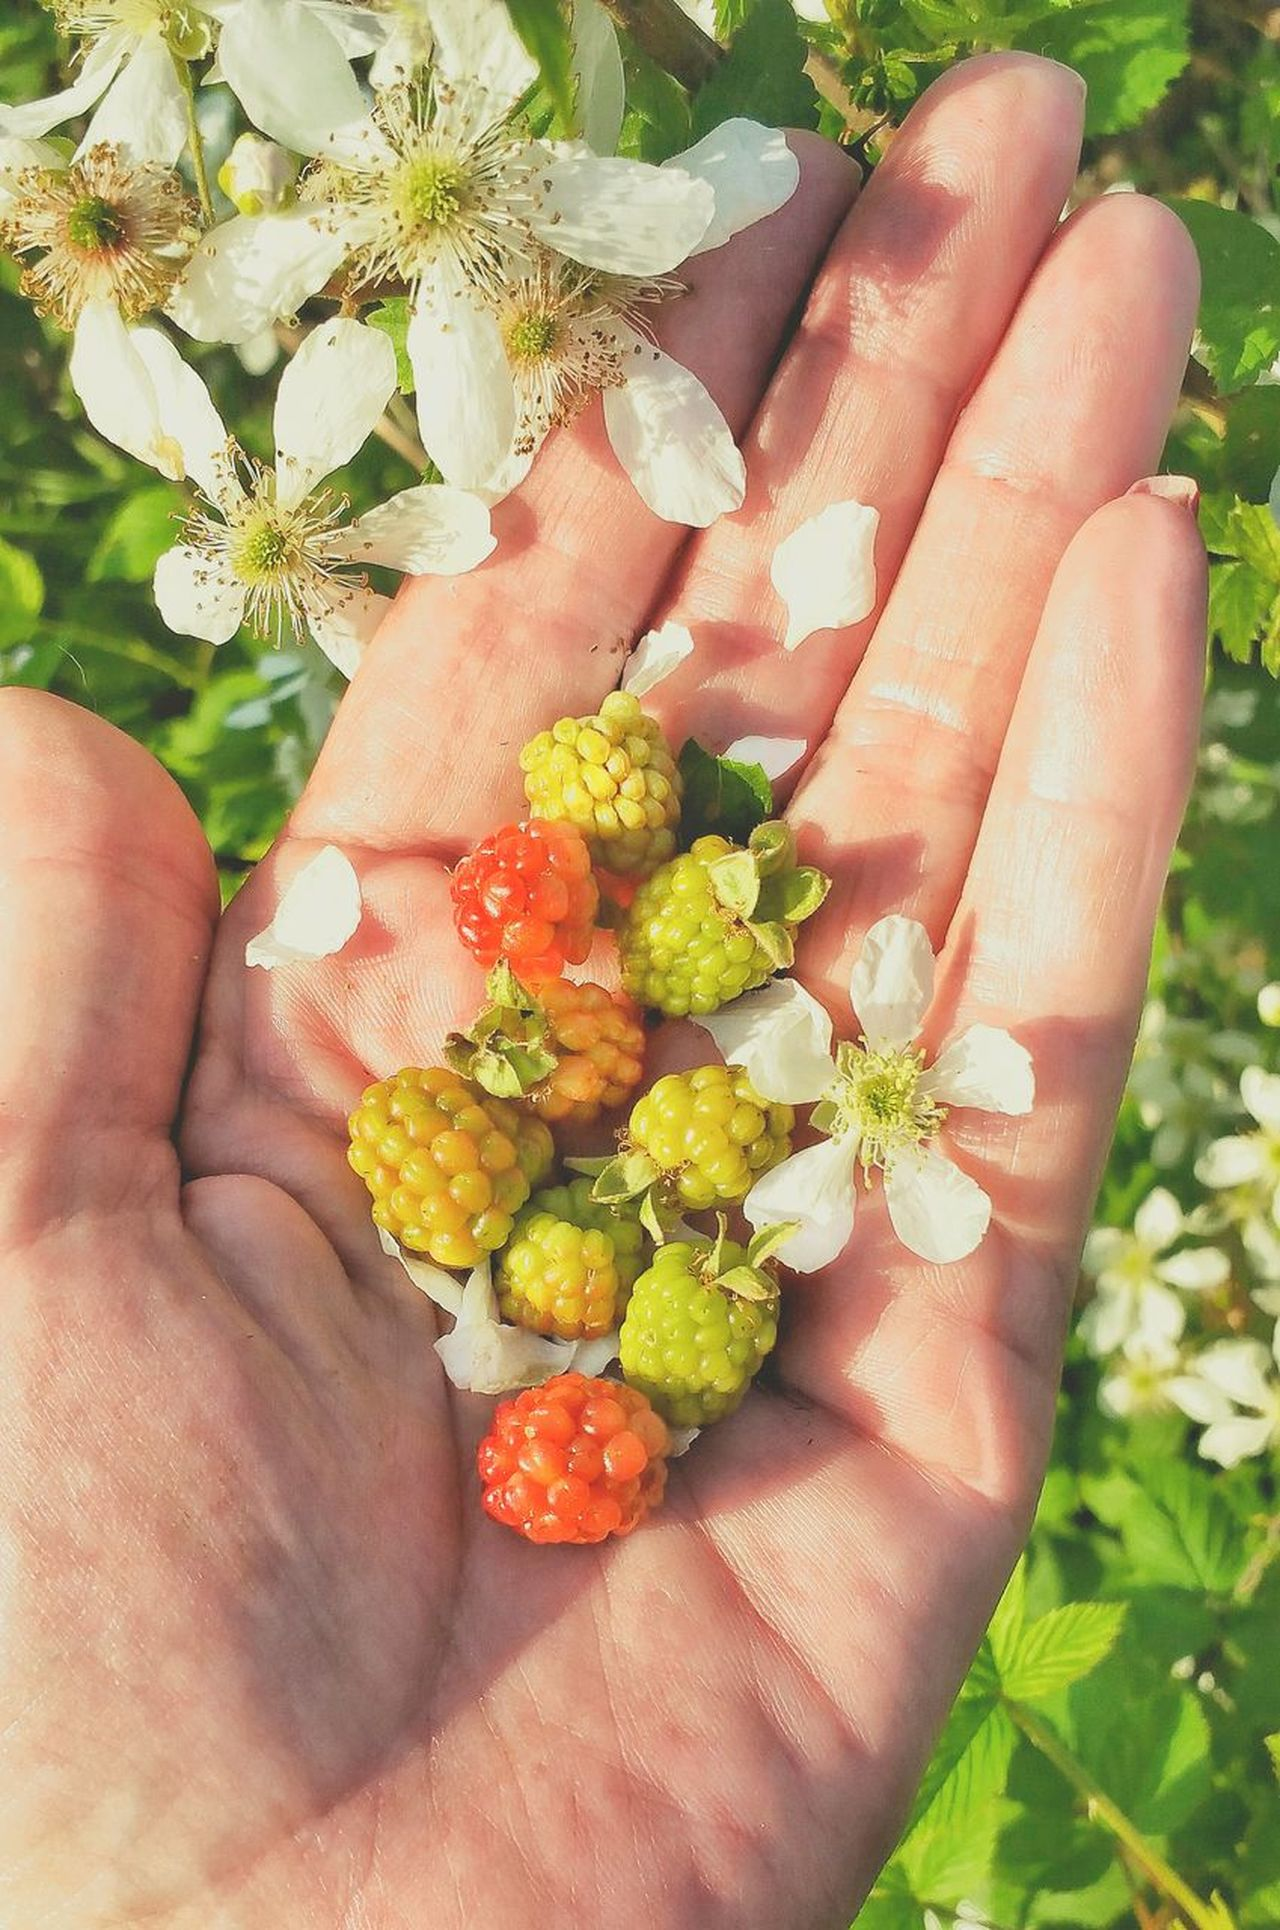 Human Hand Holding Food Freshness Healthy Eating People Palm Close-up Leisure Activity Nature Outdoors Beauty In Nature Wild Blackberries Dew Berries Blackberry Backgrounds High Angle View Room For Text Room For Copy Unripe Fruit Freshness Multi Colored Variation Berry Fruit Visual Feast